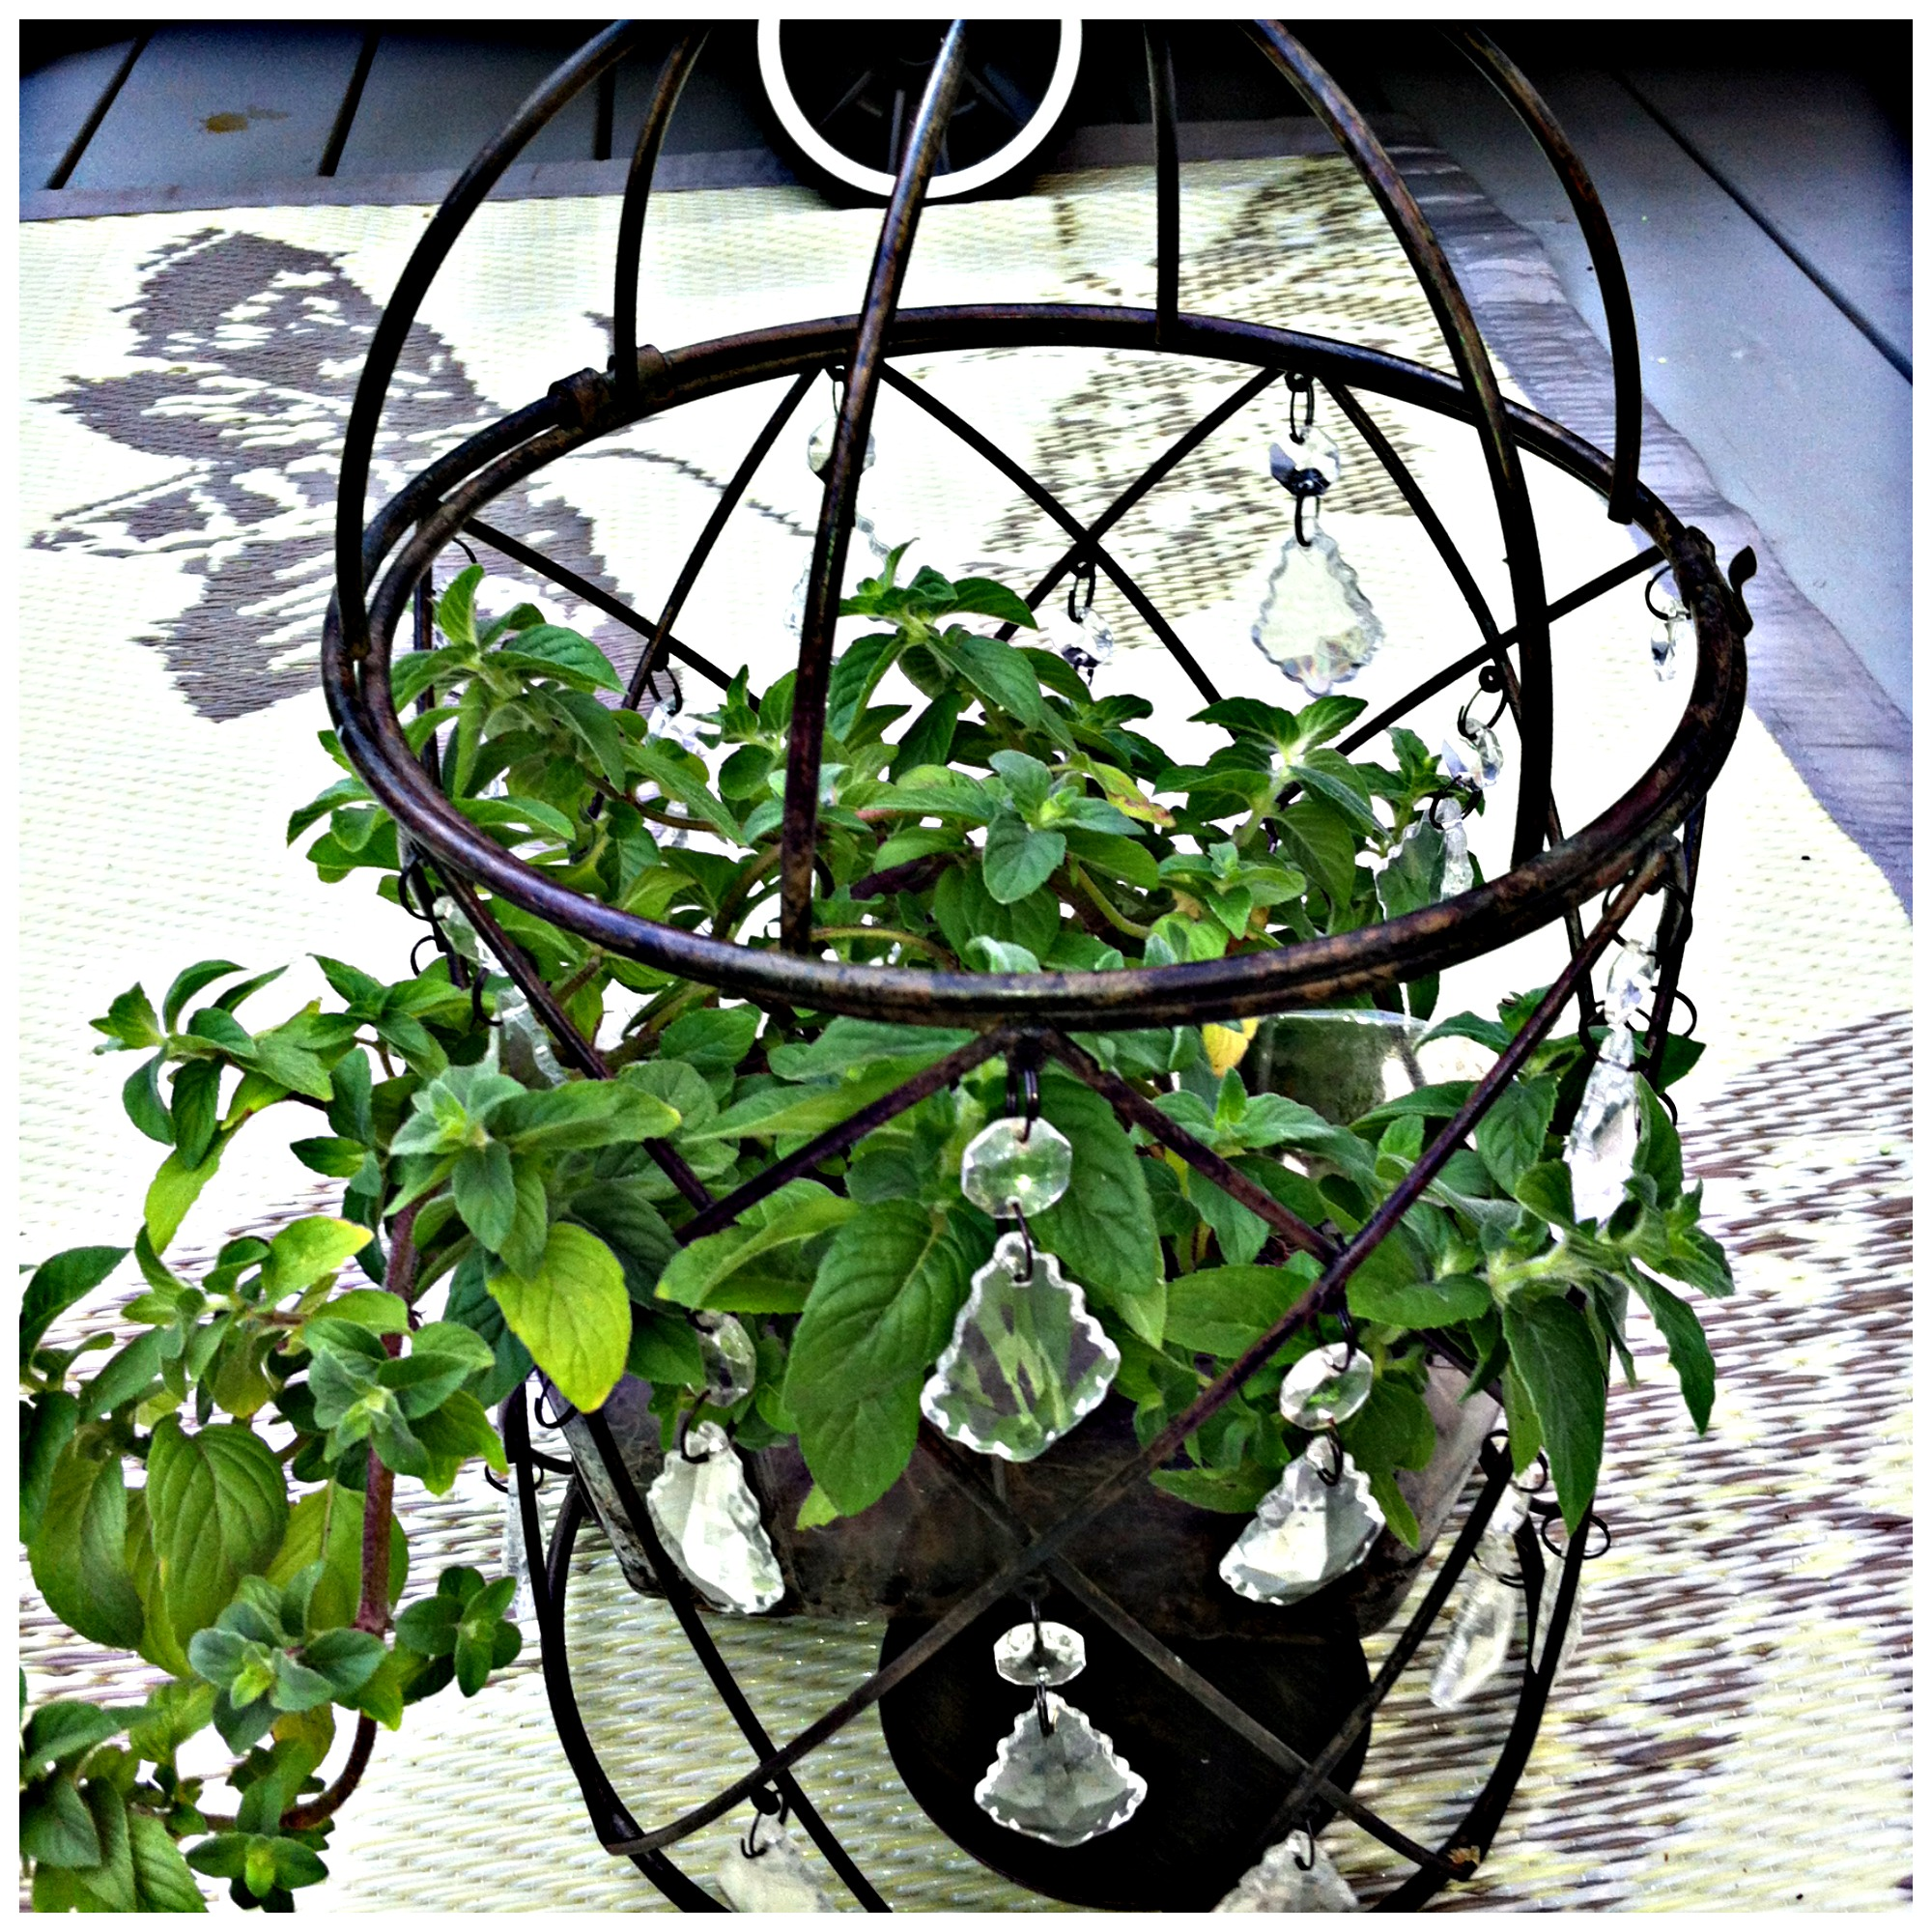 Candlle Holder Plant Stand 8 DIY Patio Accents #trashtotreasure #patio #diy #yard #garden #up-cycle #re-purpose #patio_table #plant_stand #bird_bath #herb_garden